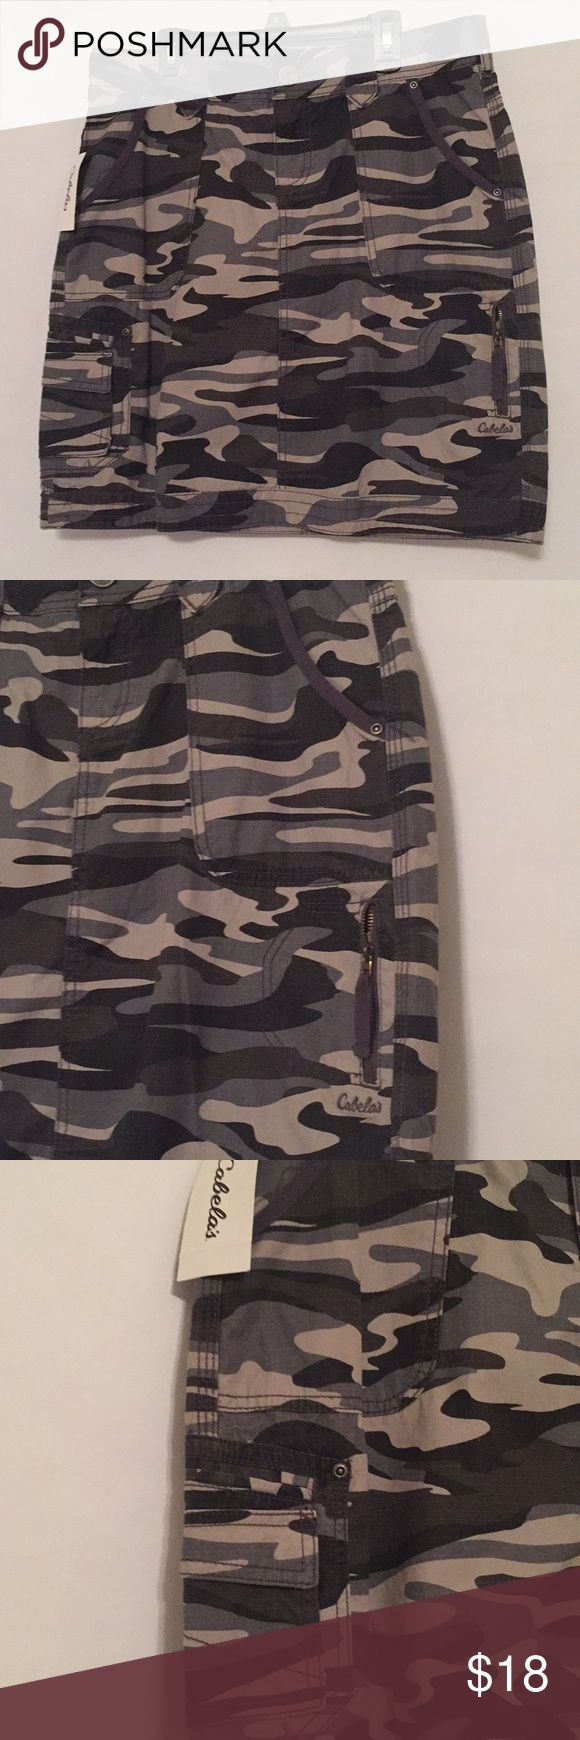 "🆕 Cabelas gray camo skirt Gray camo skirt from Cabelas. Patch pockets in front, zippered pocket on side front, cargo pocket on other side front, two back patch pockets. Bottom band, zip front, belt loops. 100% cotton. Waist 33"", length 19.5"". Awesome skirt! Cabelas Skirts Mini"